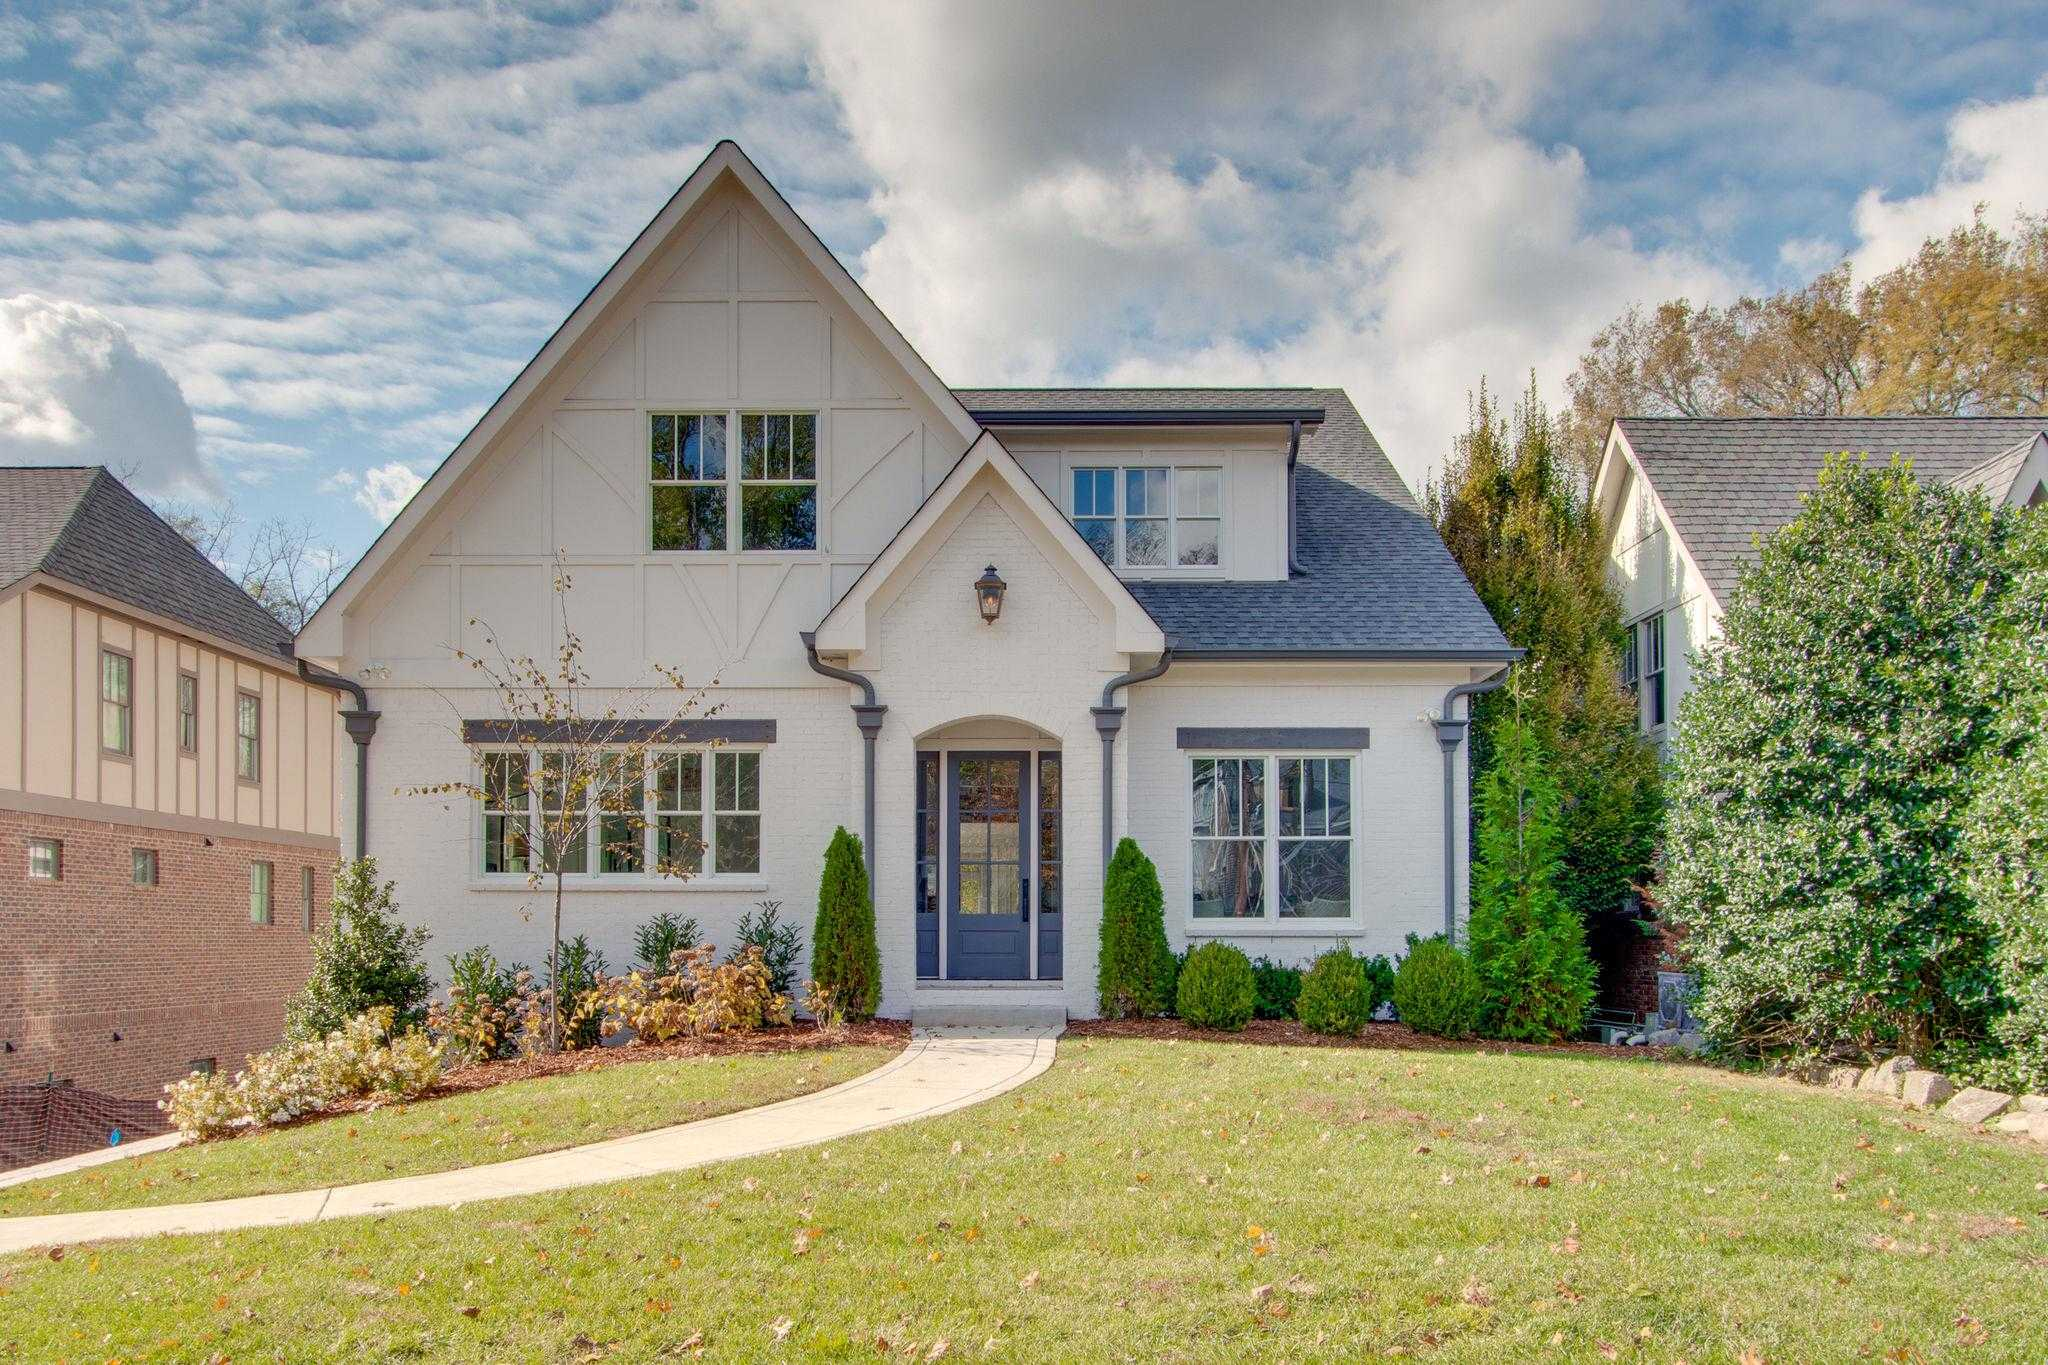 $1,774,000 - 5Br/8Ba -  for Sale in Whitland, Nashville